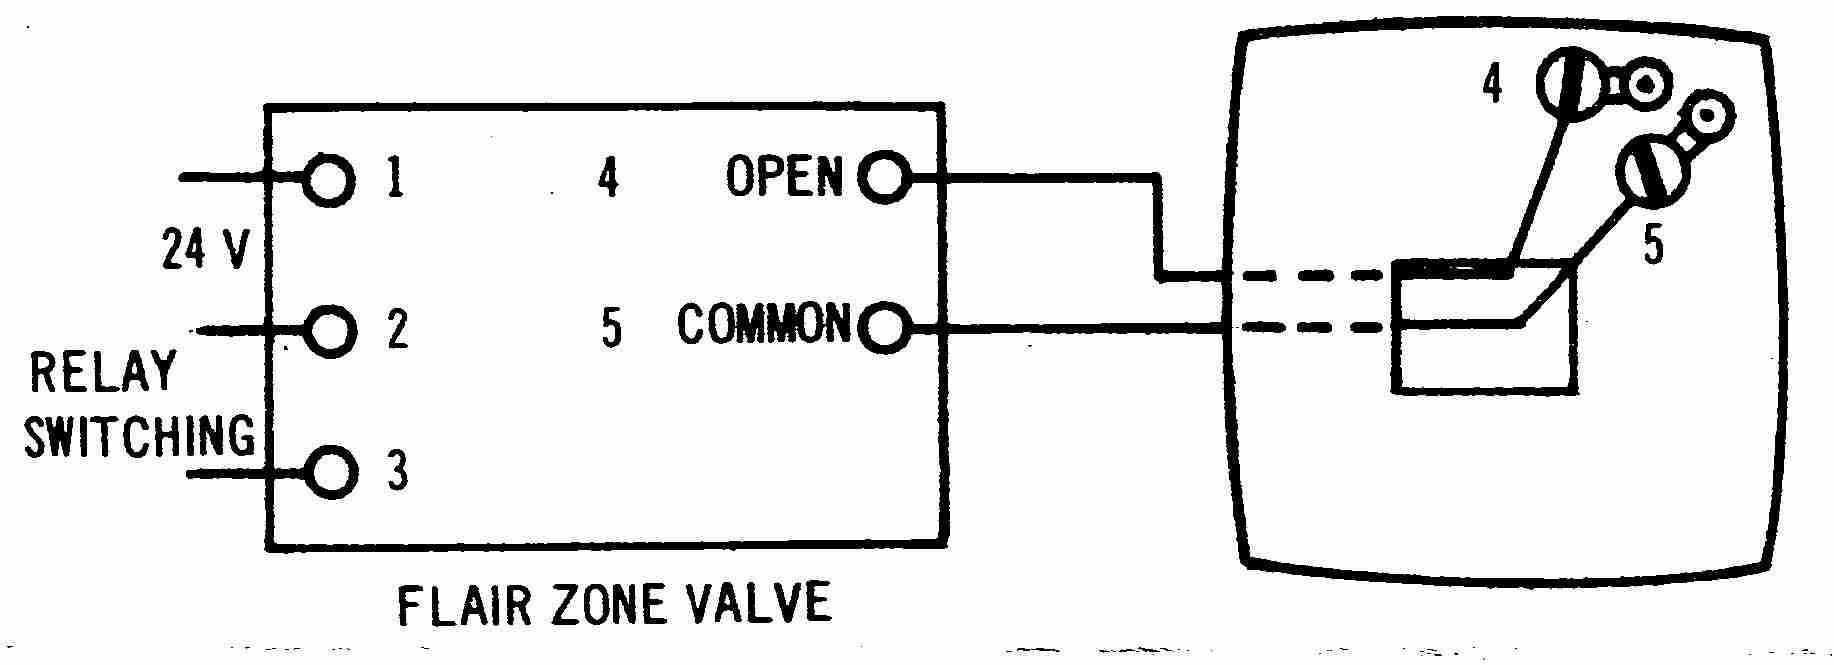 Room Thermostat Wiring Diagrams For Hvac Systems Wall Switch Schematic Diagram Flair 2 Wire Thermosat